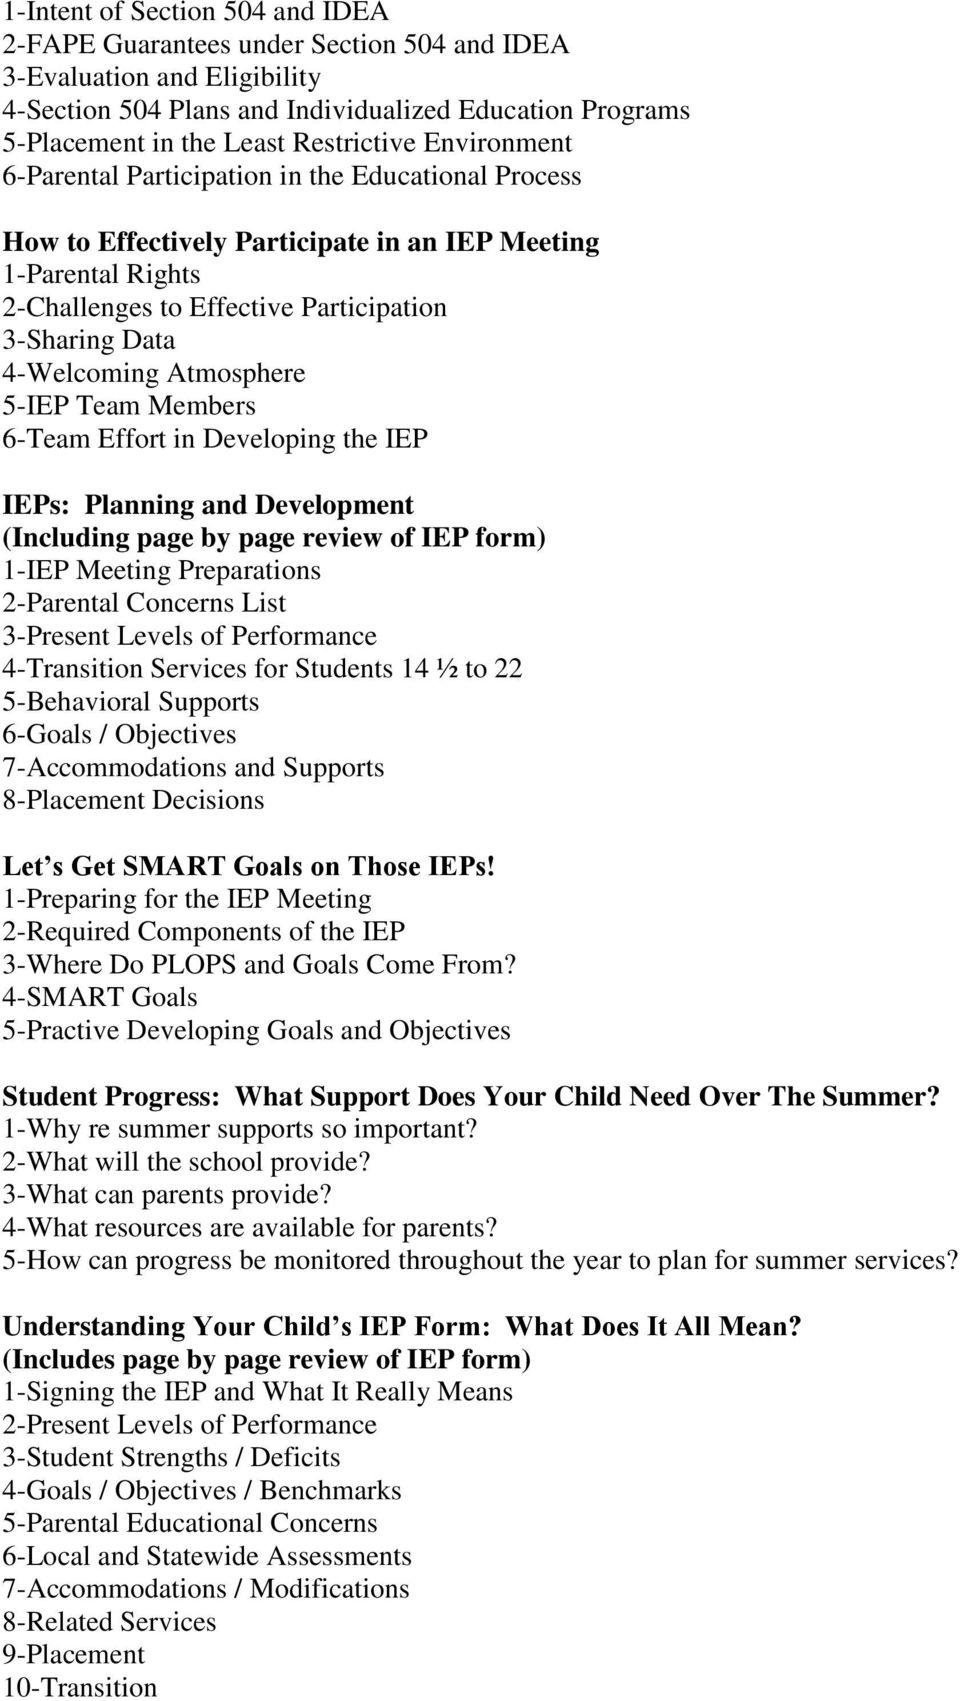 Iep Planning Accommodations Modifications Smart Kids >> Family Matters Ptic Training Topics And Agendas Pdf